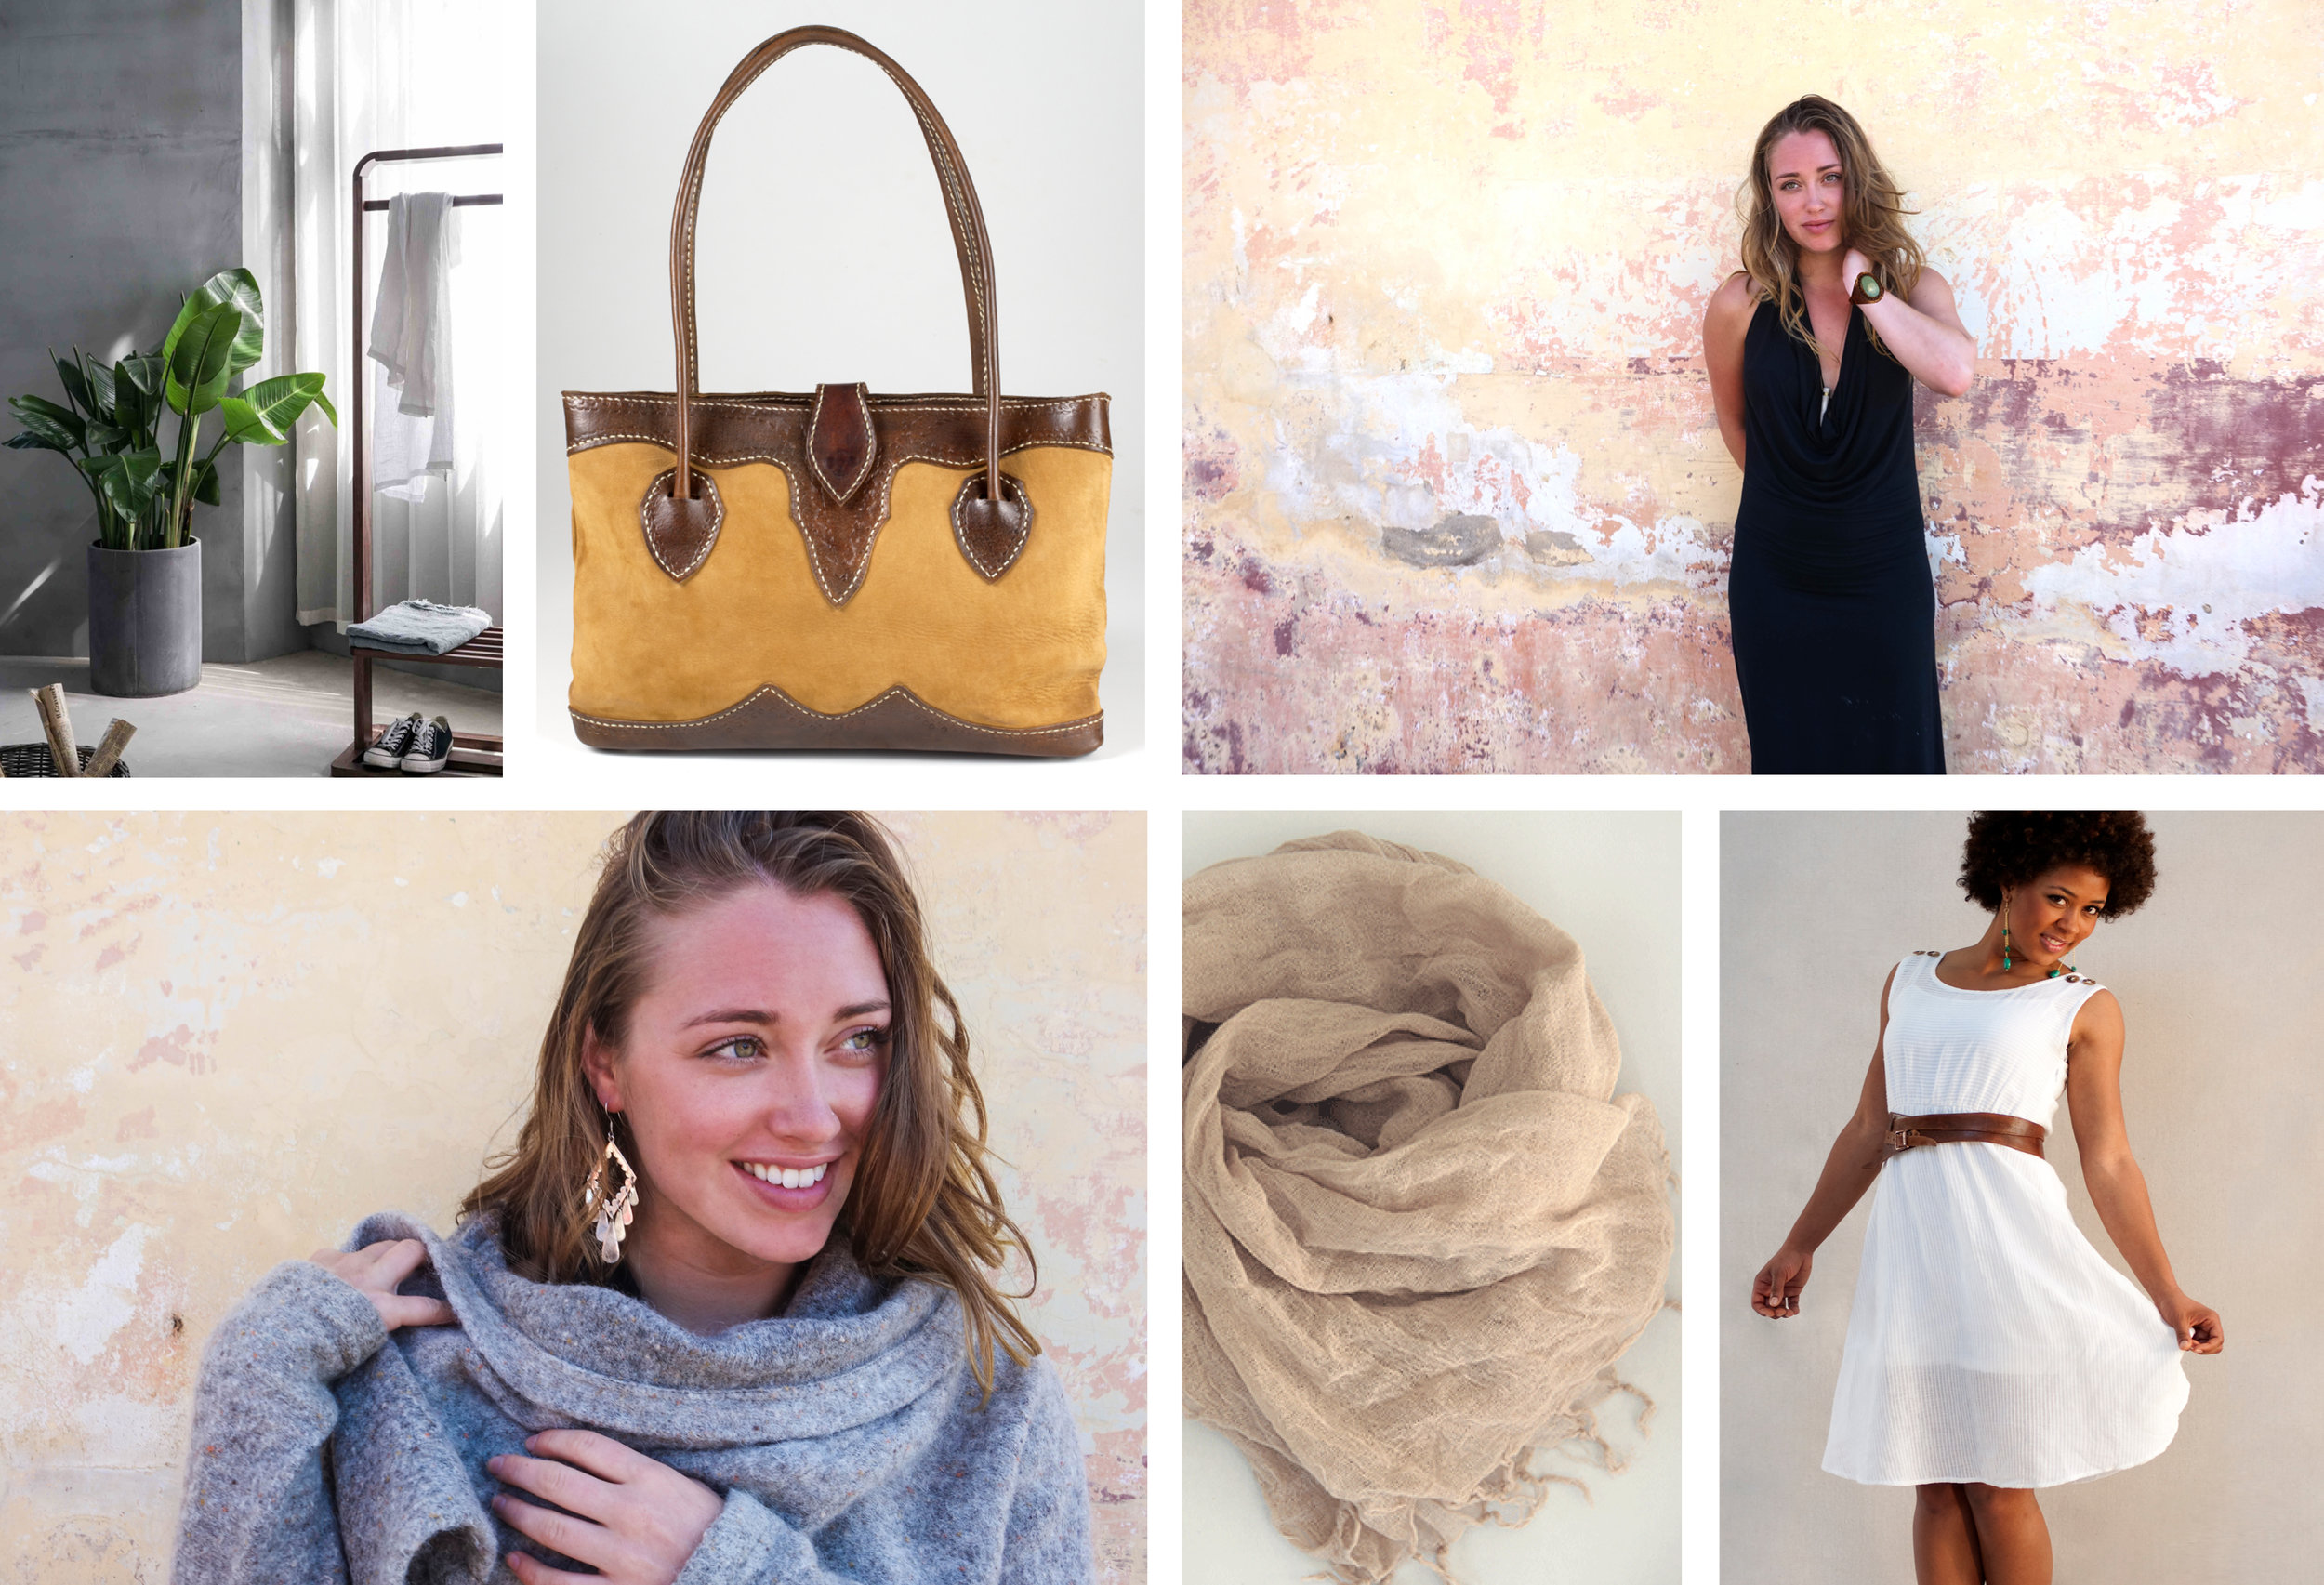 These photographs were set and produced for Ambos Designs, an ethical and conscious product design company in Guatemala. These photos aimed to showcase the thoughtful designs and exquisite craftsmanship that made this company stand out among the fair trade market.